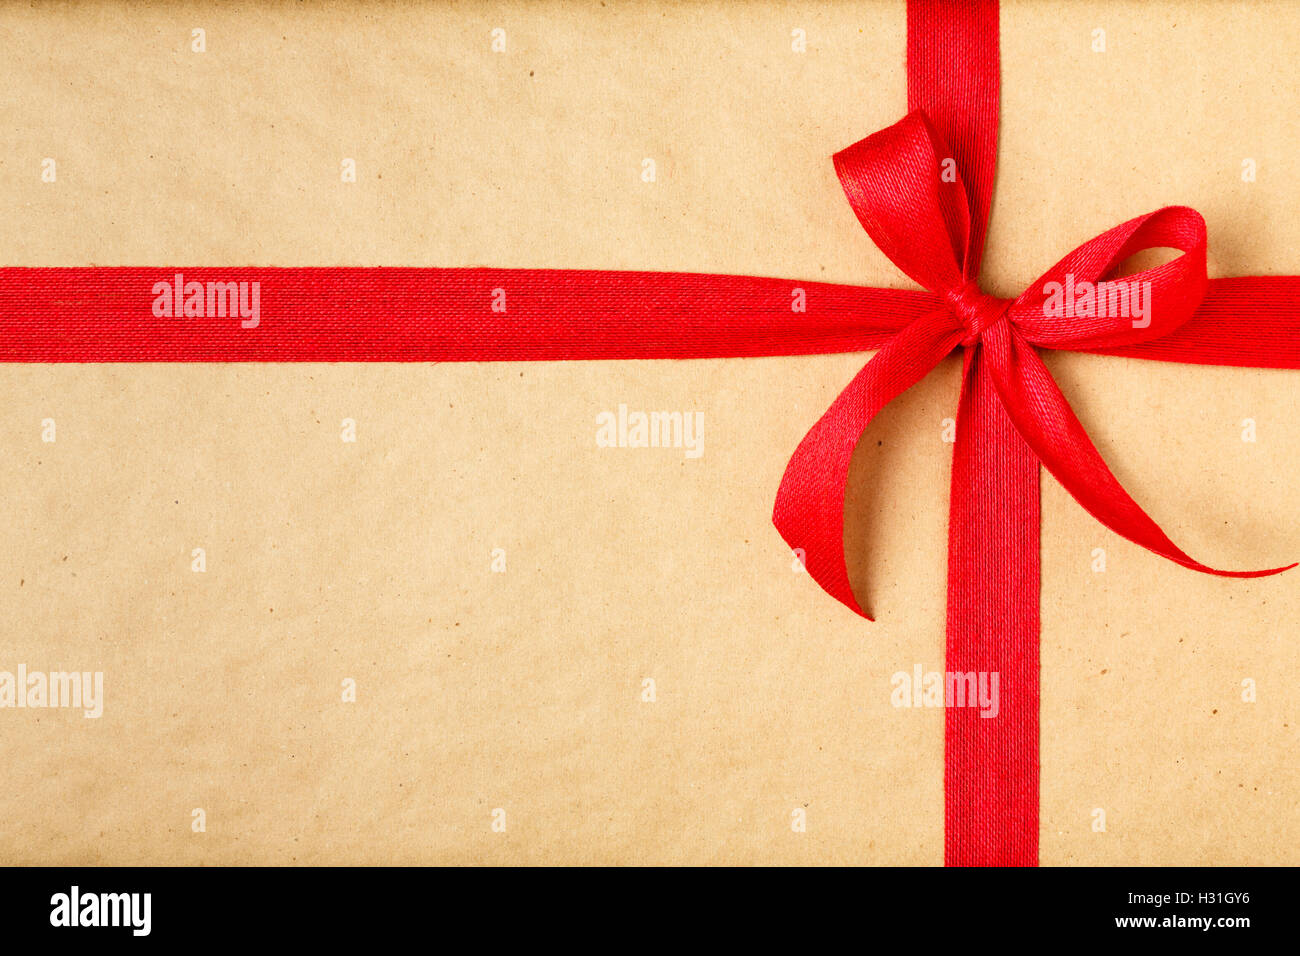 simple christmas gift christmas present background with recycled wrapping paper and red bow